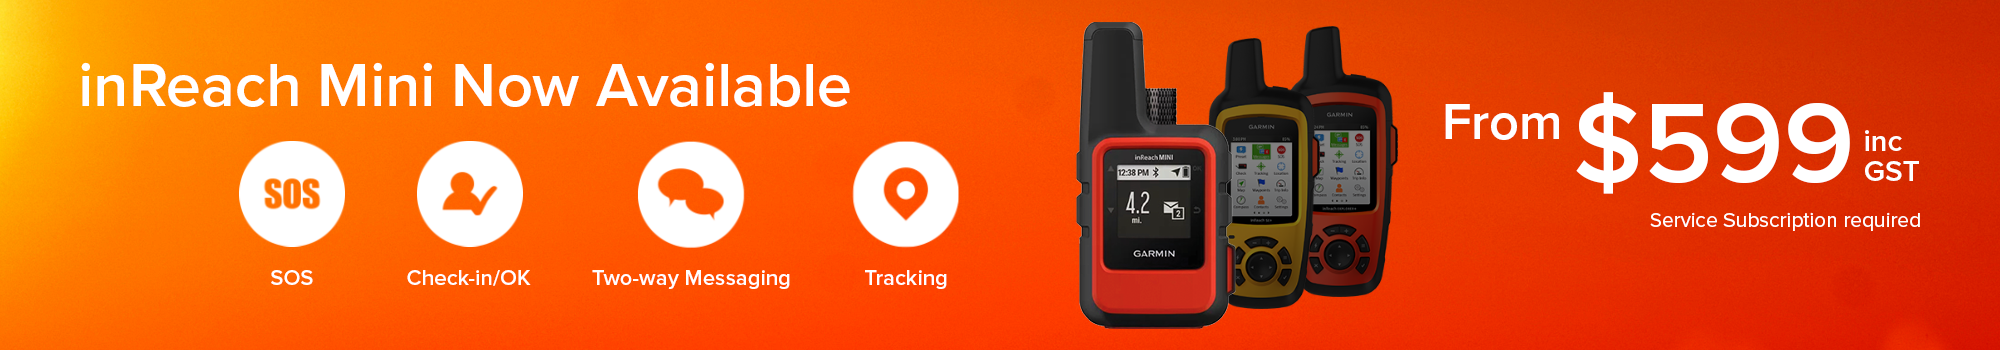 inreach mini now available. from $599 inc gst. subscription required.